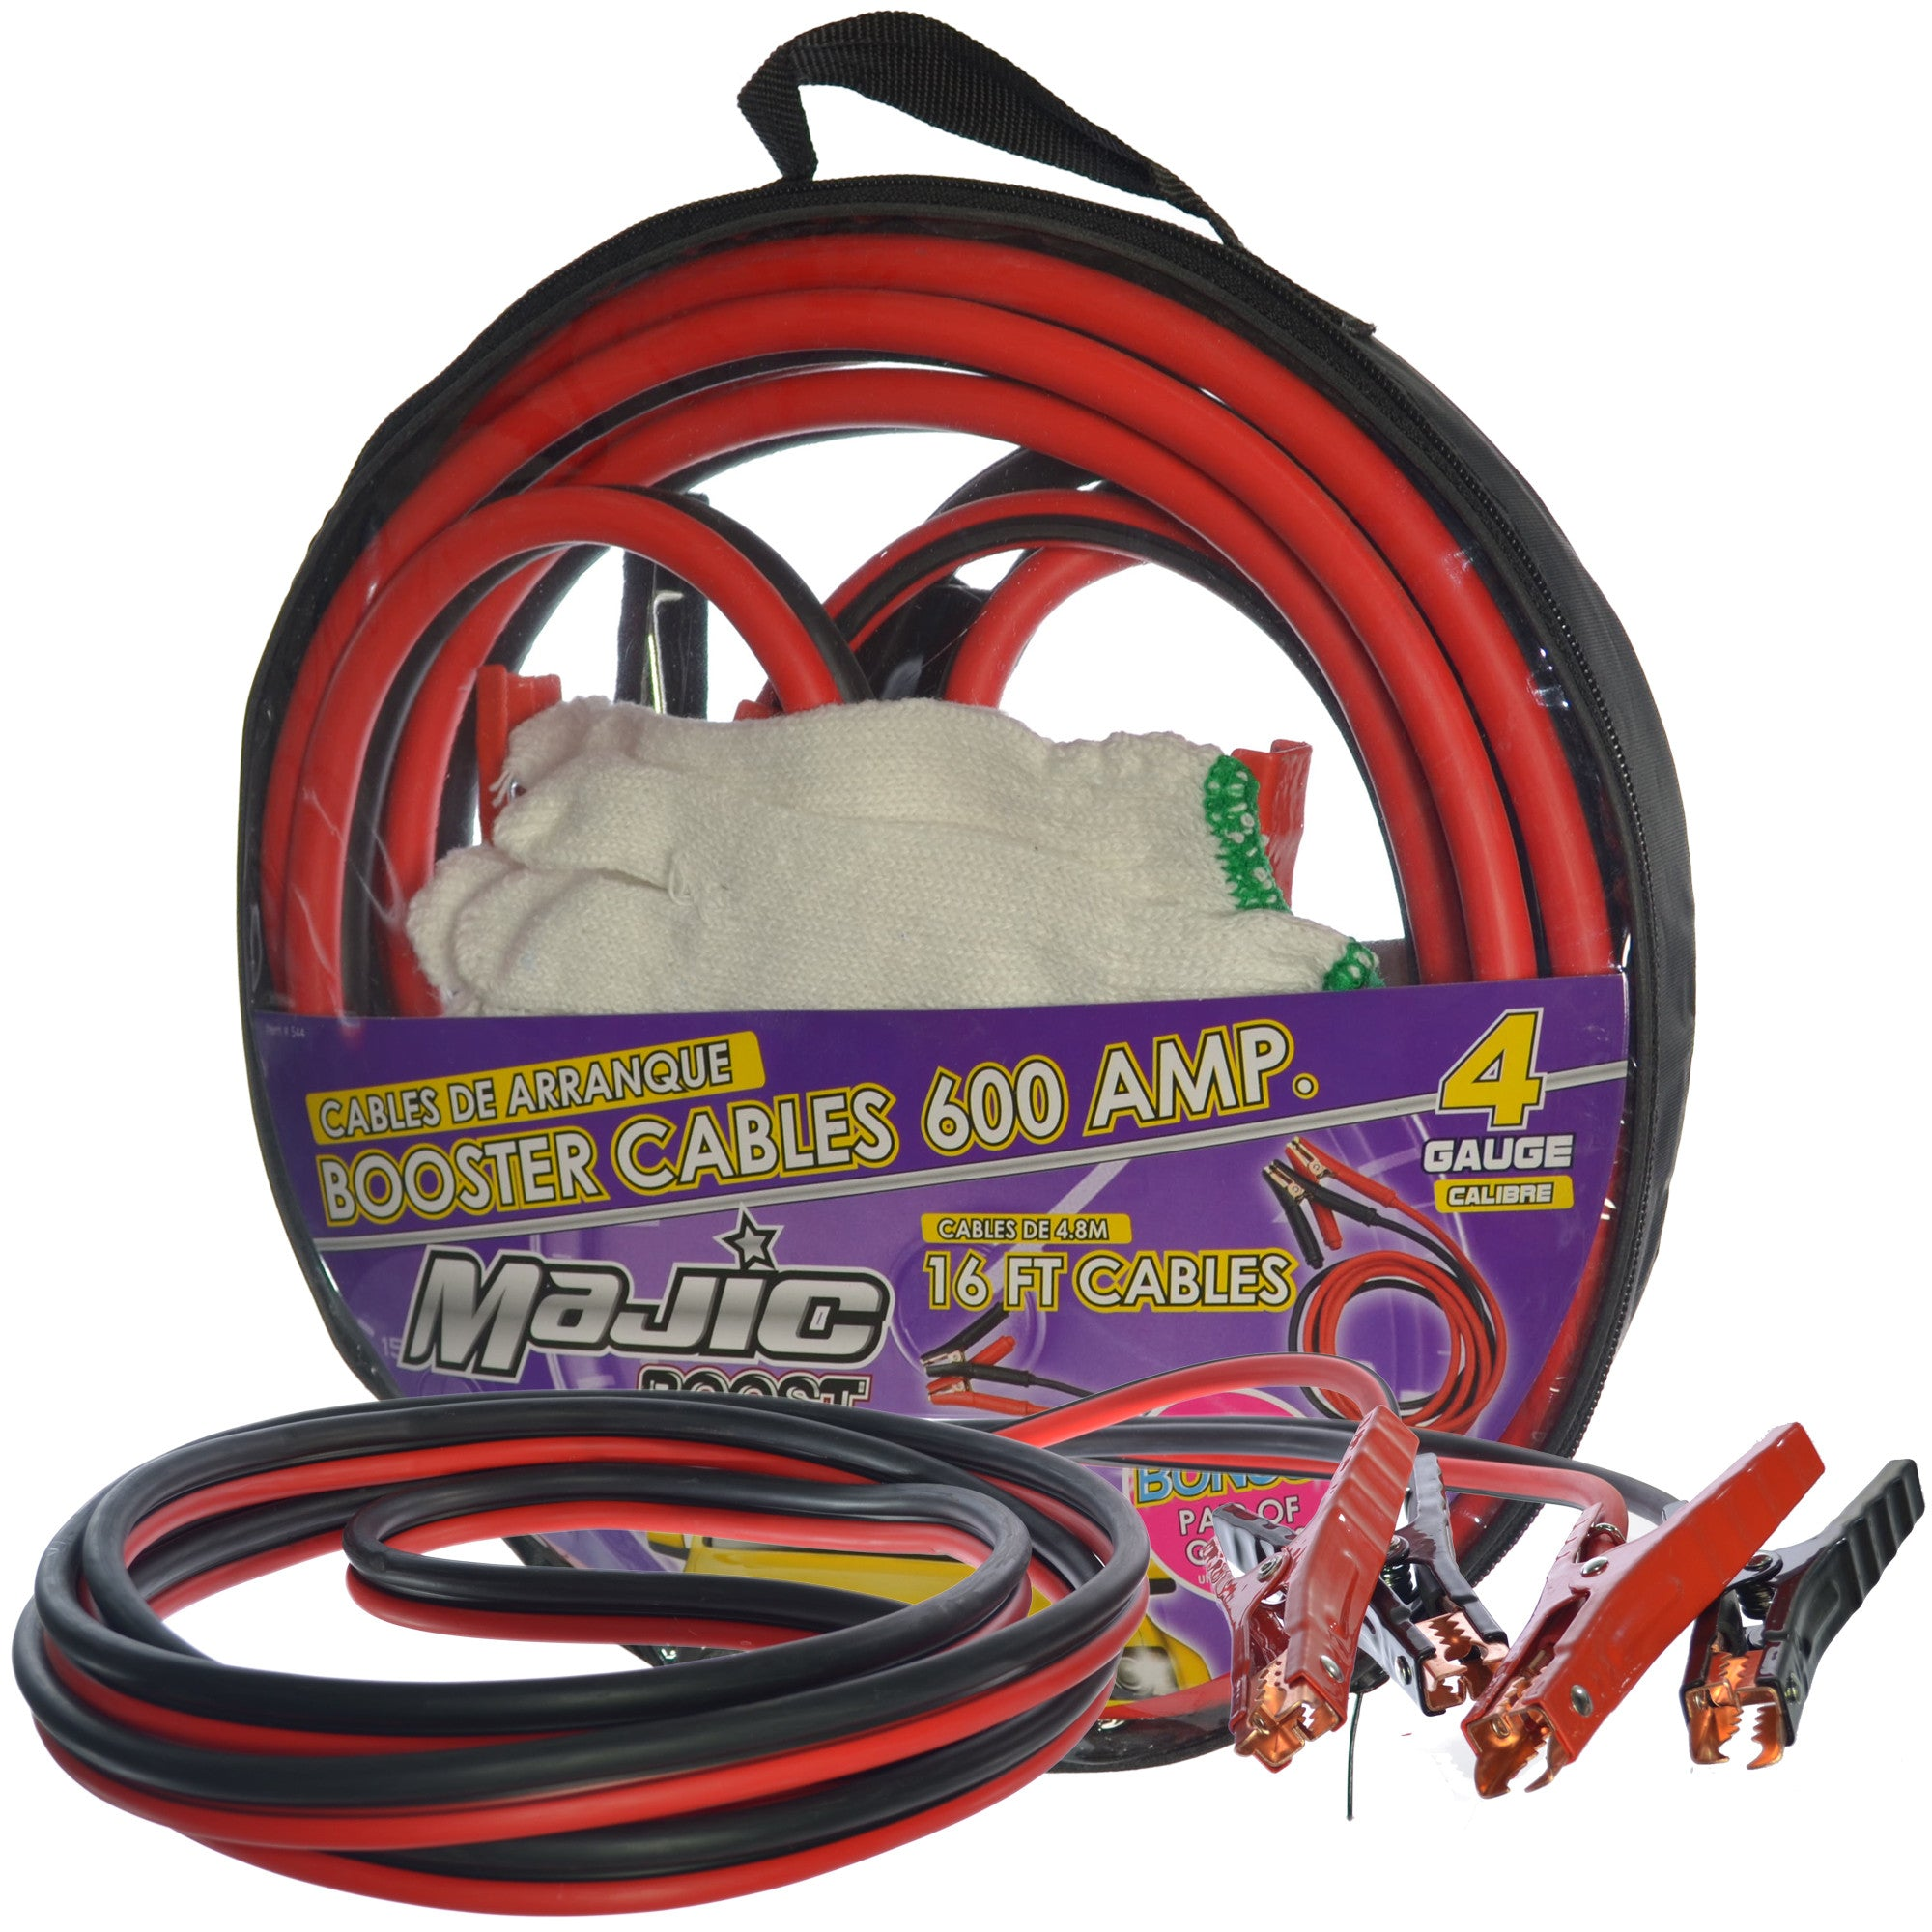 Majic 600 AMP Power Booster Cables 4 Gauge Heavy Duty 16 Feet Long ...